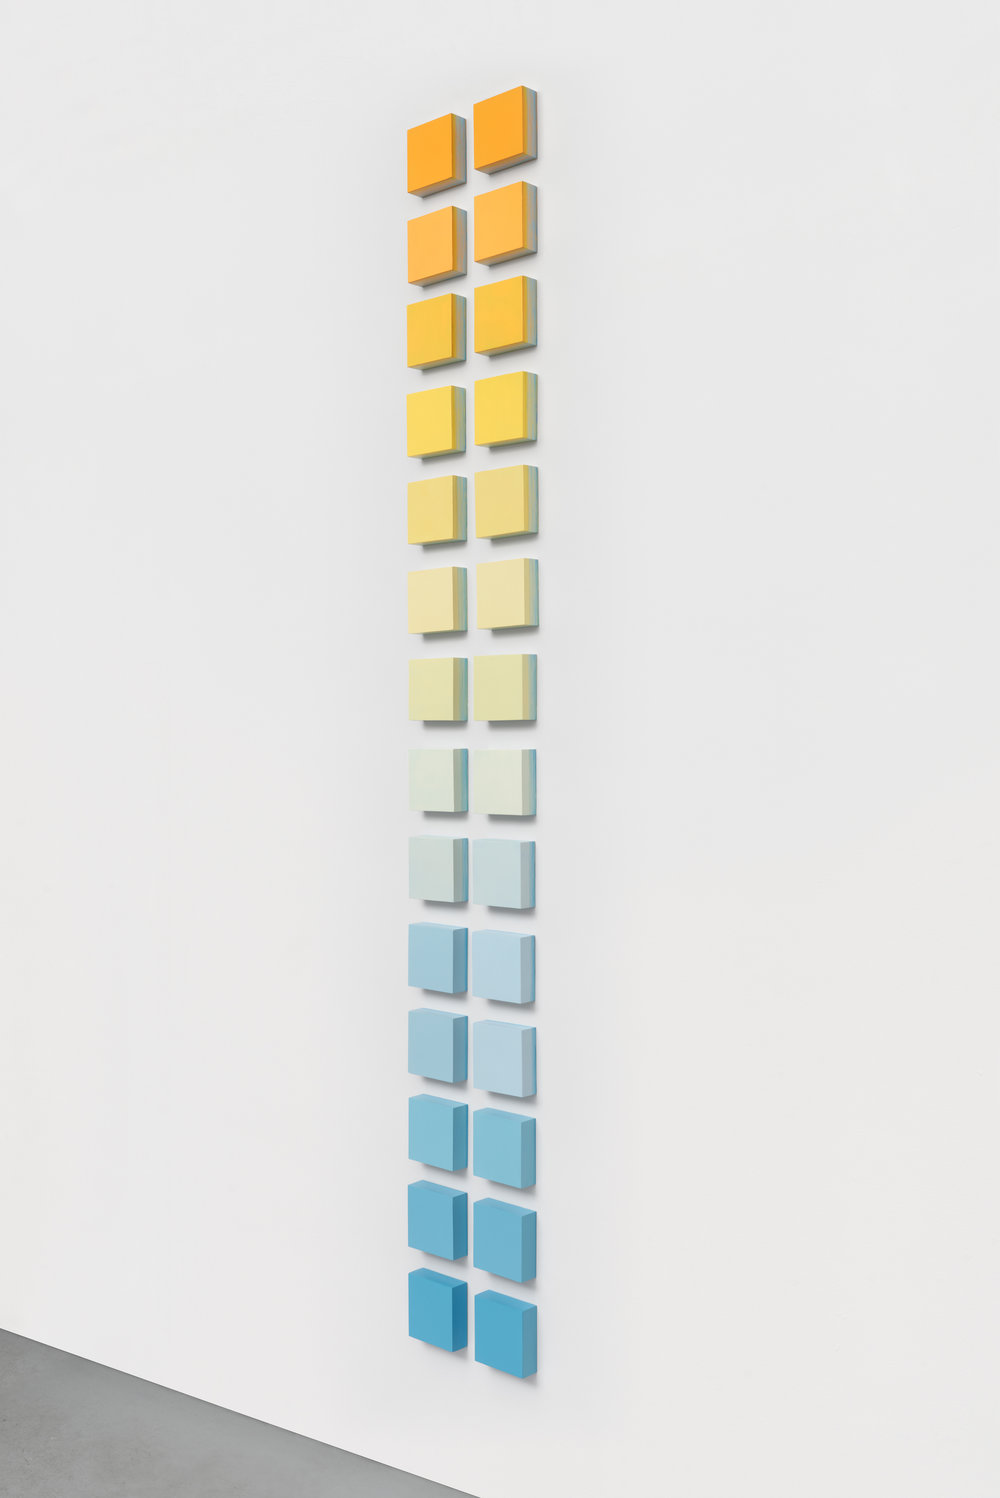 Mel Prest,  Marigold Ladder , 2016, acrylic on panel, (28) 5 x 5 x 2 inch panels, 96 x 12 x 2 inches overall Courtesy of the Artist and Chandra Cerrito Contemporary, Oakland